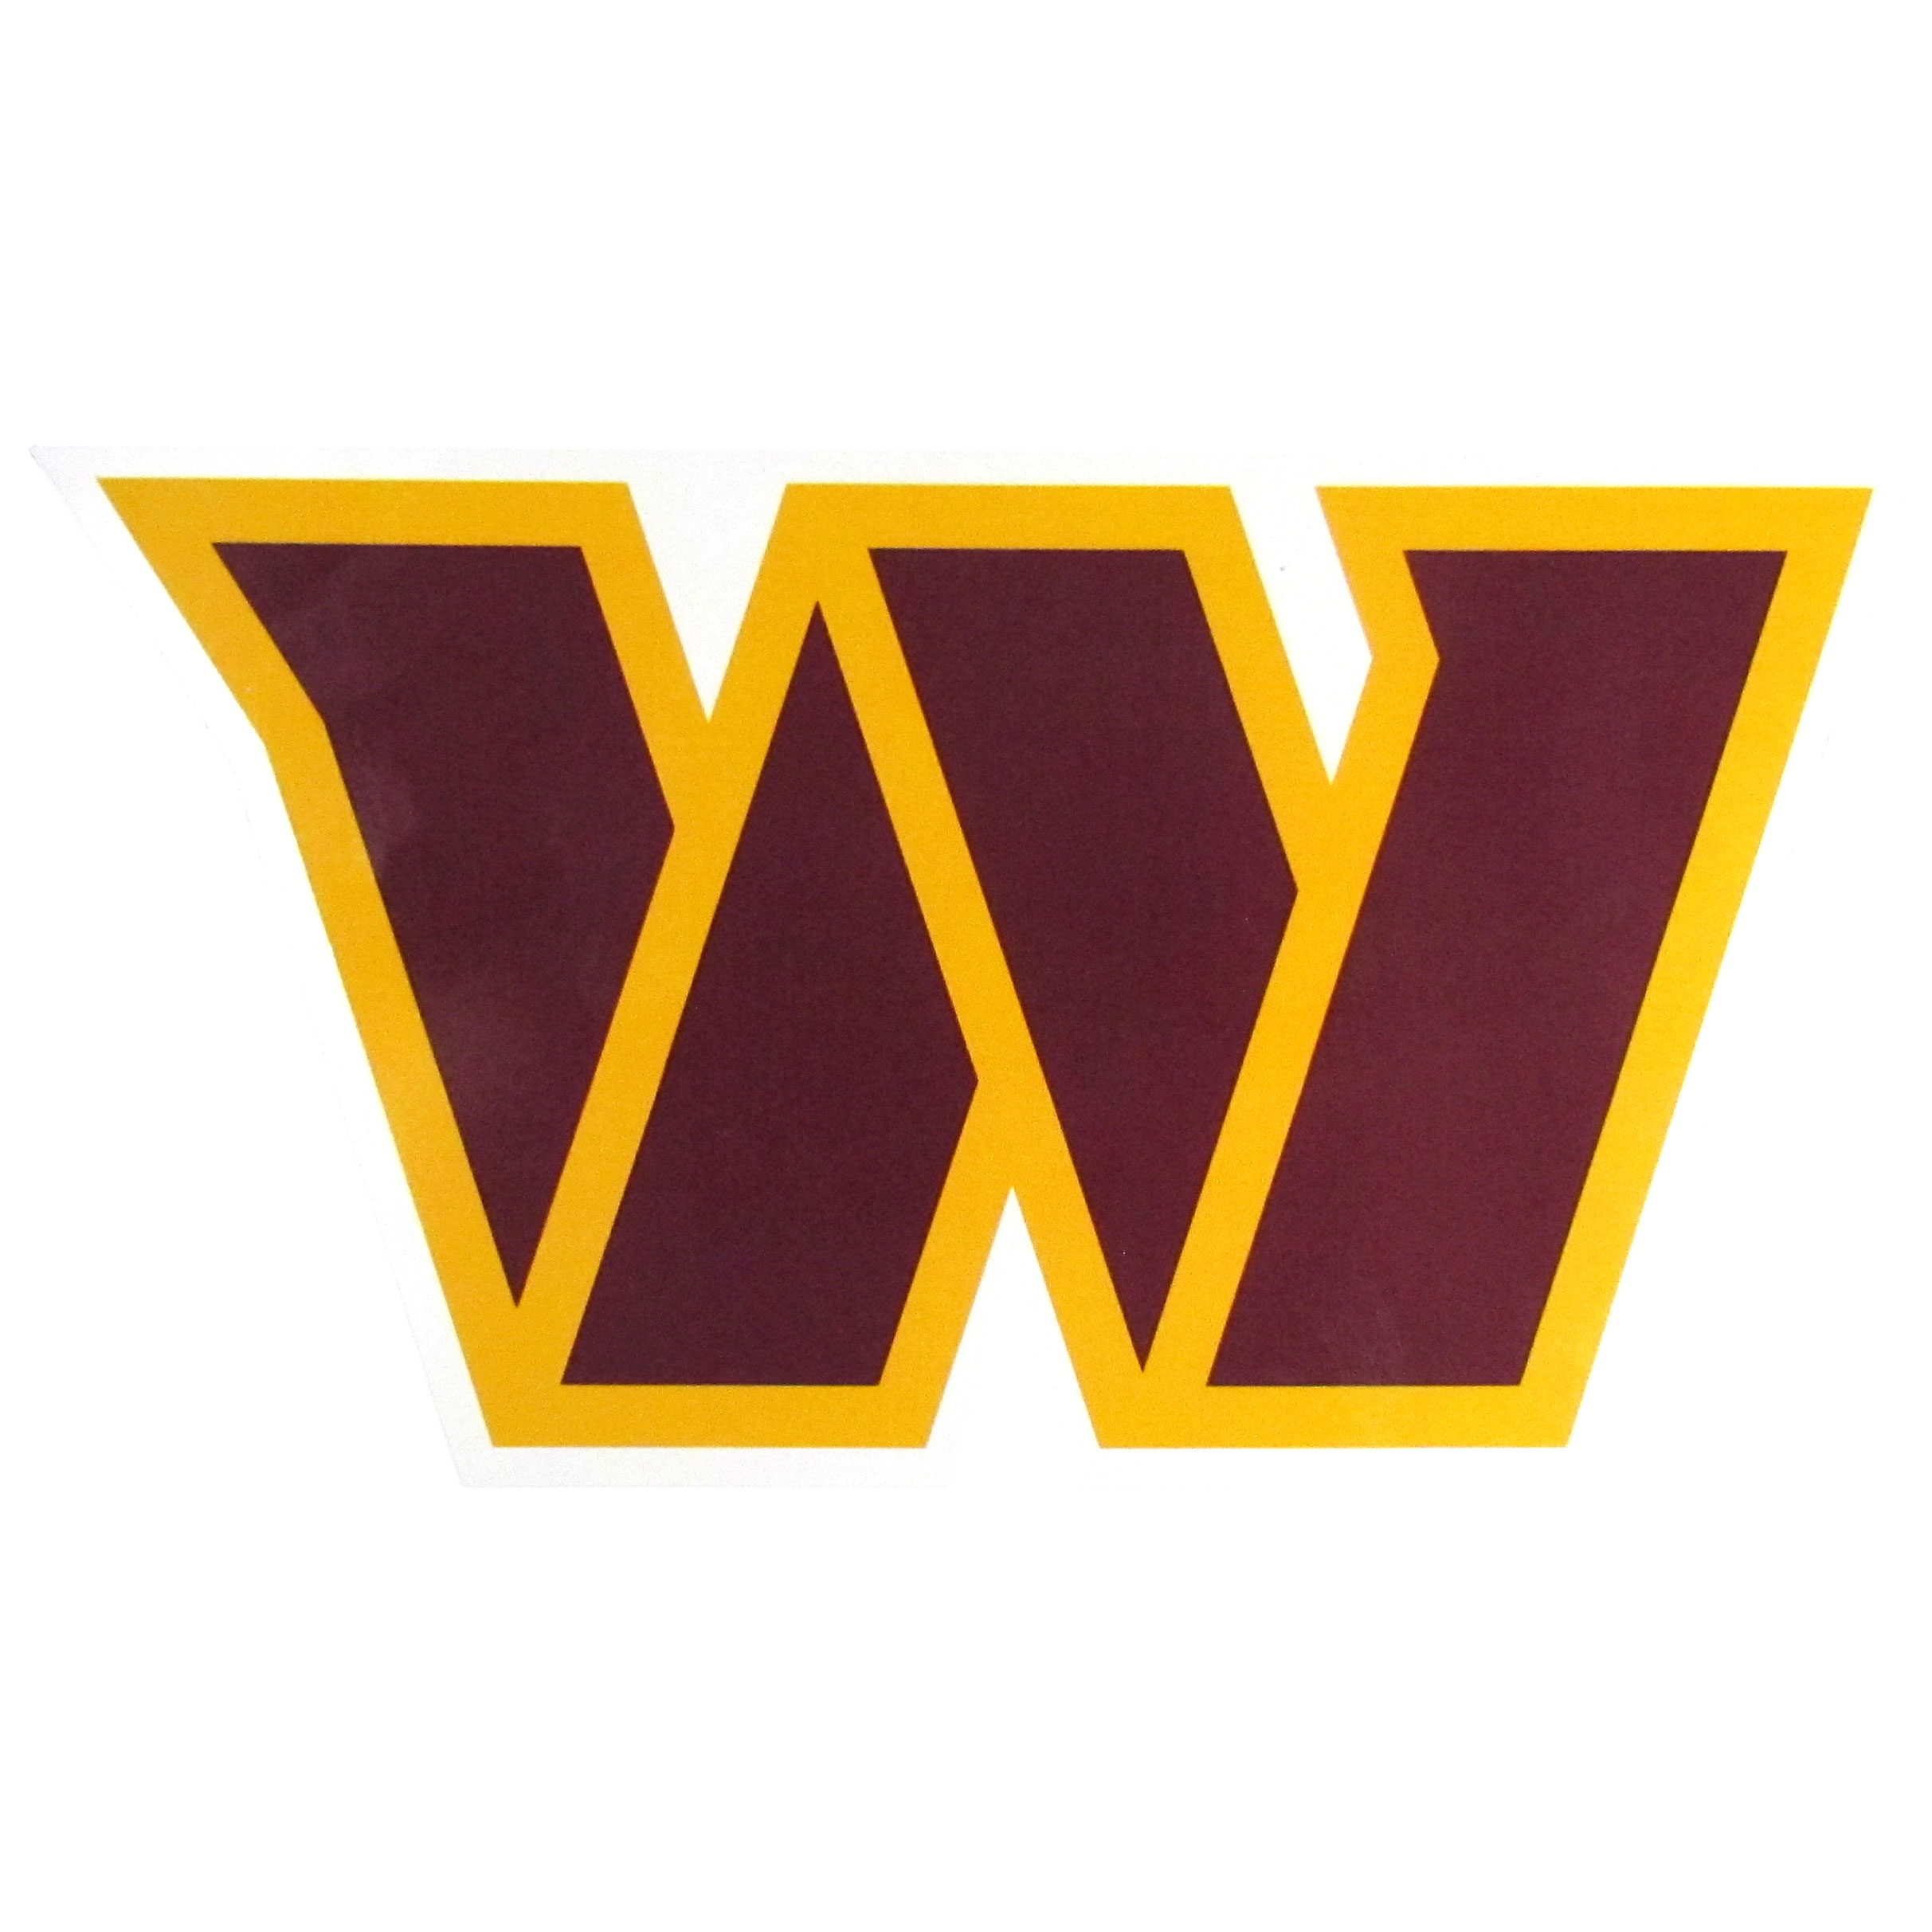 Washington Redskins 8 inch Auto Decal - This bold, 8 inch Washington Redskins is a great way to show off your team pride! The low tack vinyl decal is easily positioned and adjusted to make sure you get that logo in just the right spot on your vehicle. Designed to be used on the outside of the window.